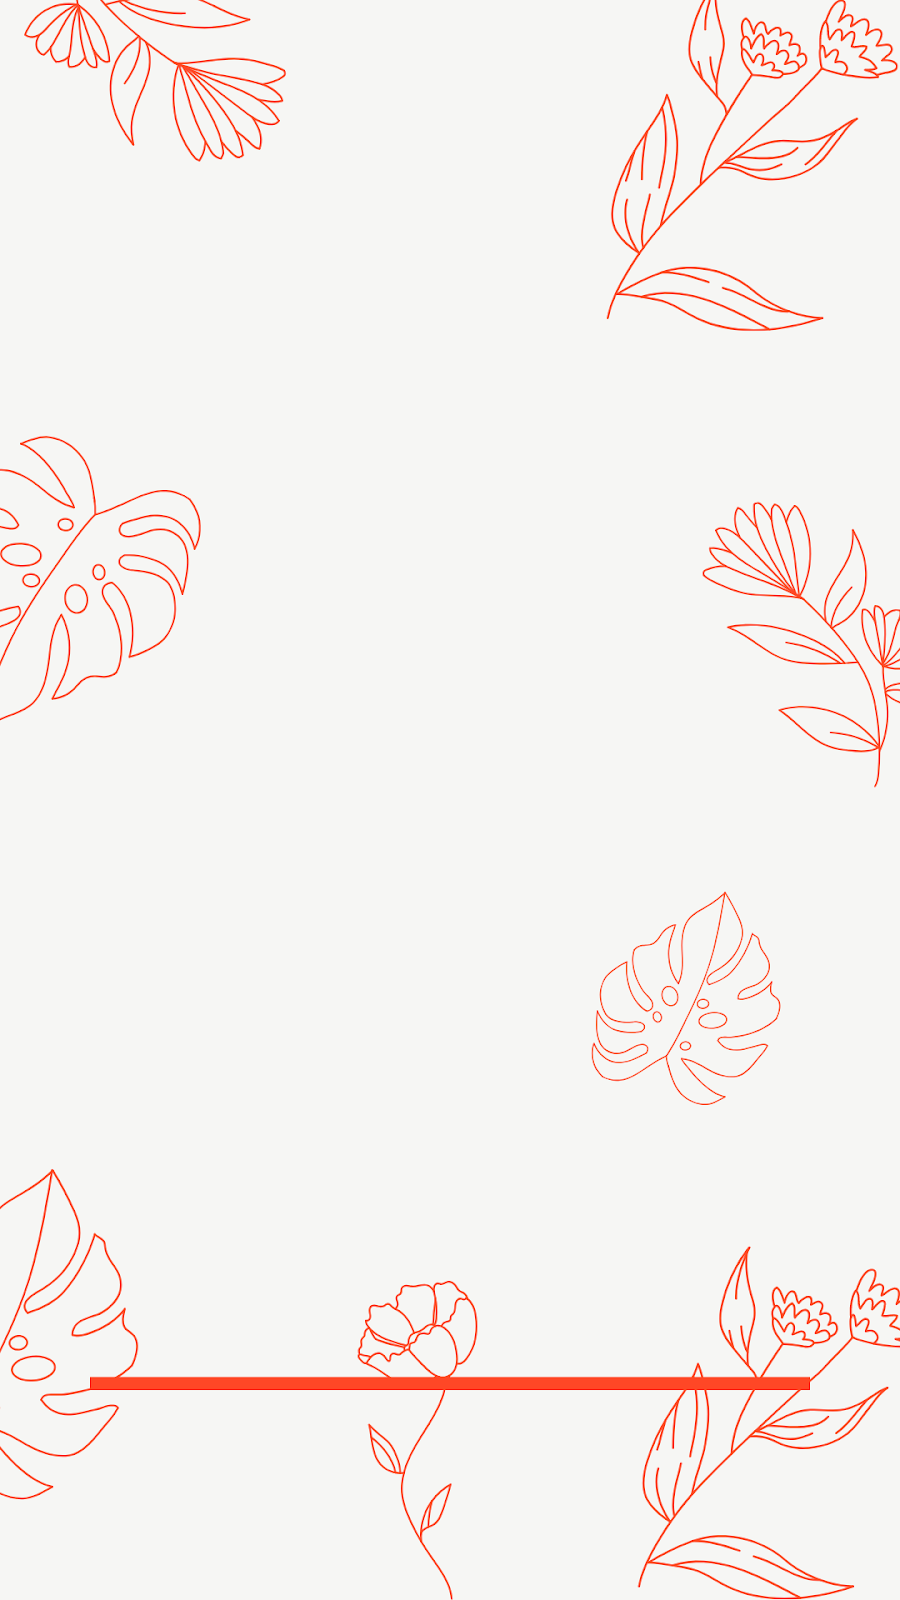 110+ Free Amazing Wallpapers For Smartphone